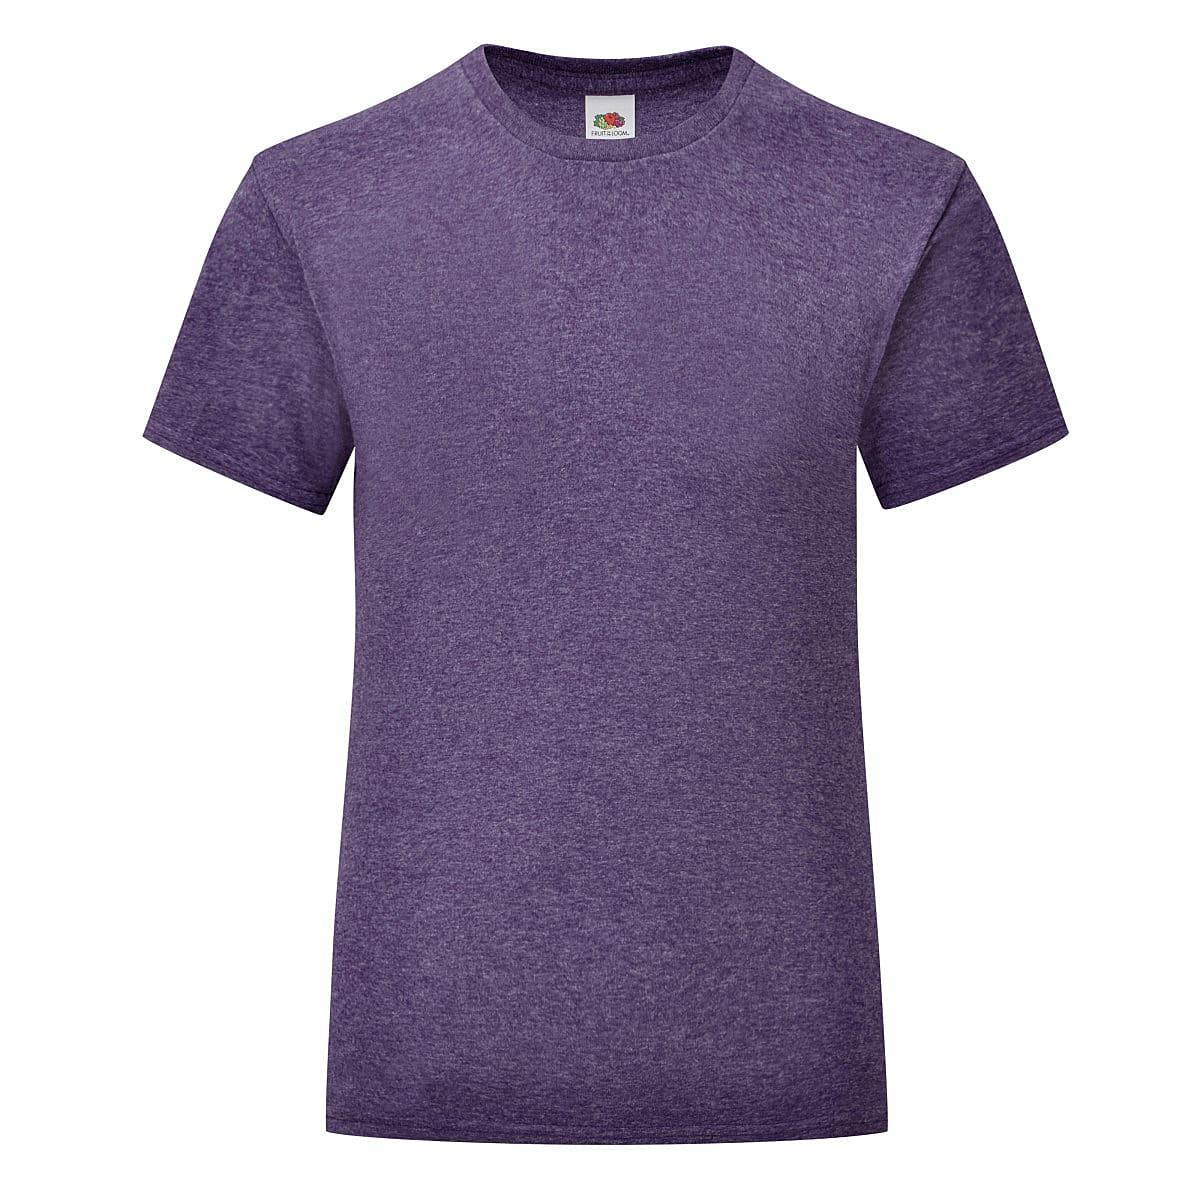 Fruit Of The Loom Girls Iconic T-Shirt in Heather Purple (Product Code: 61025)